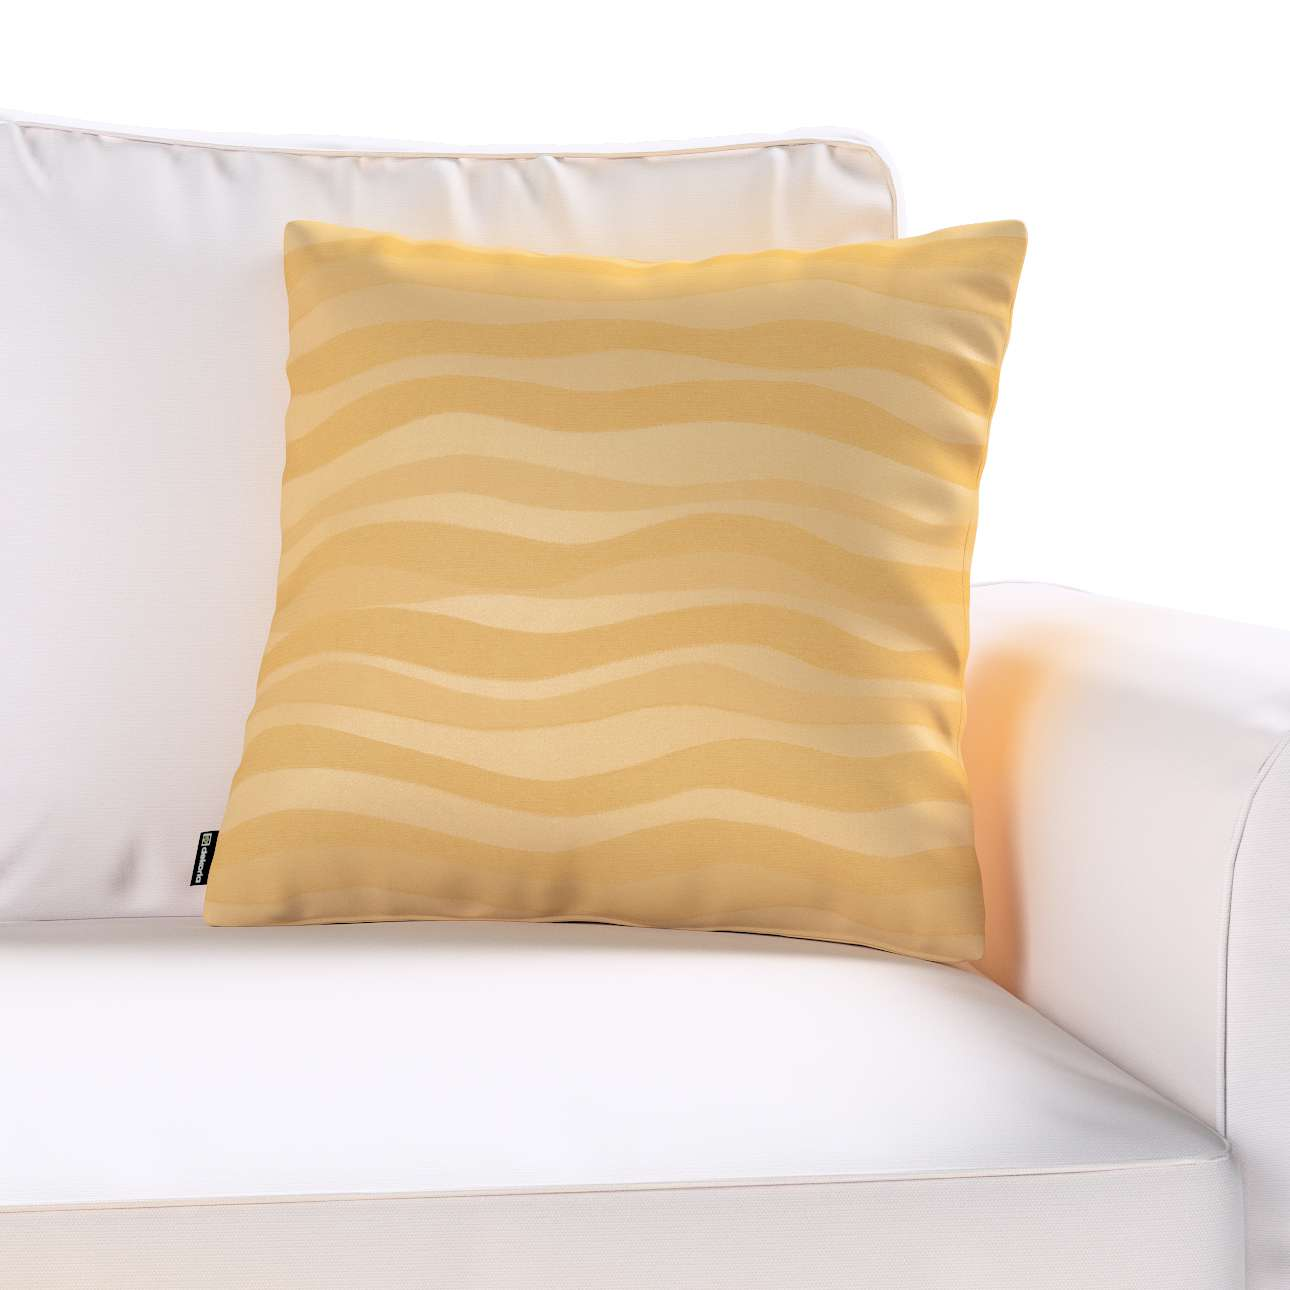 Kinga cushion cover in collection Damasco, fabric: 141-74